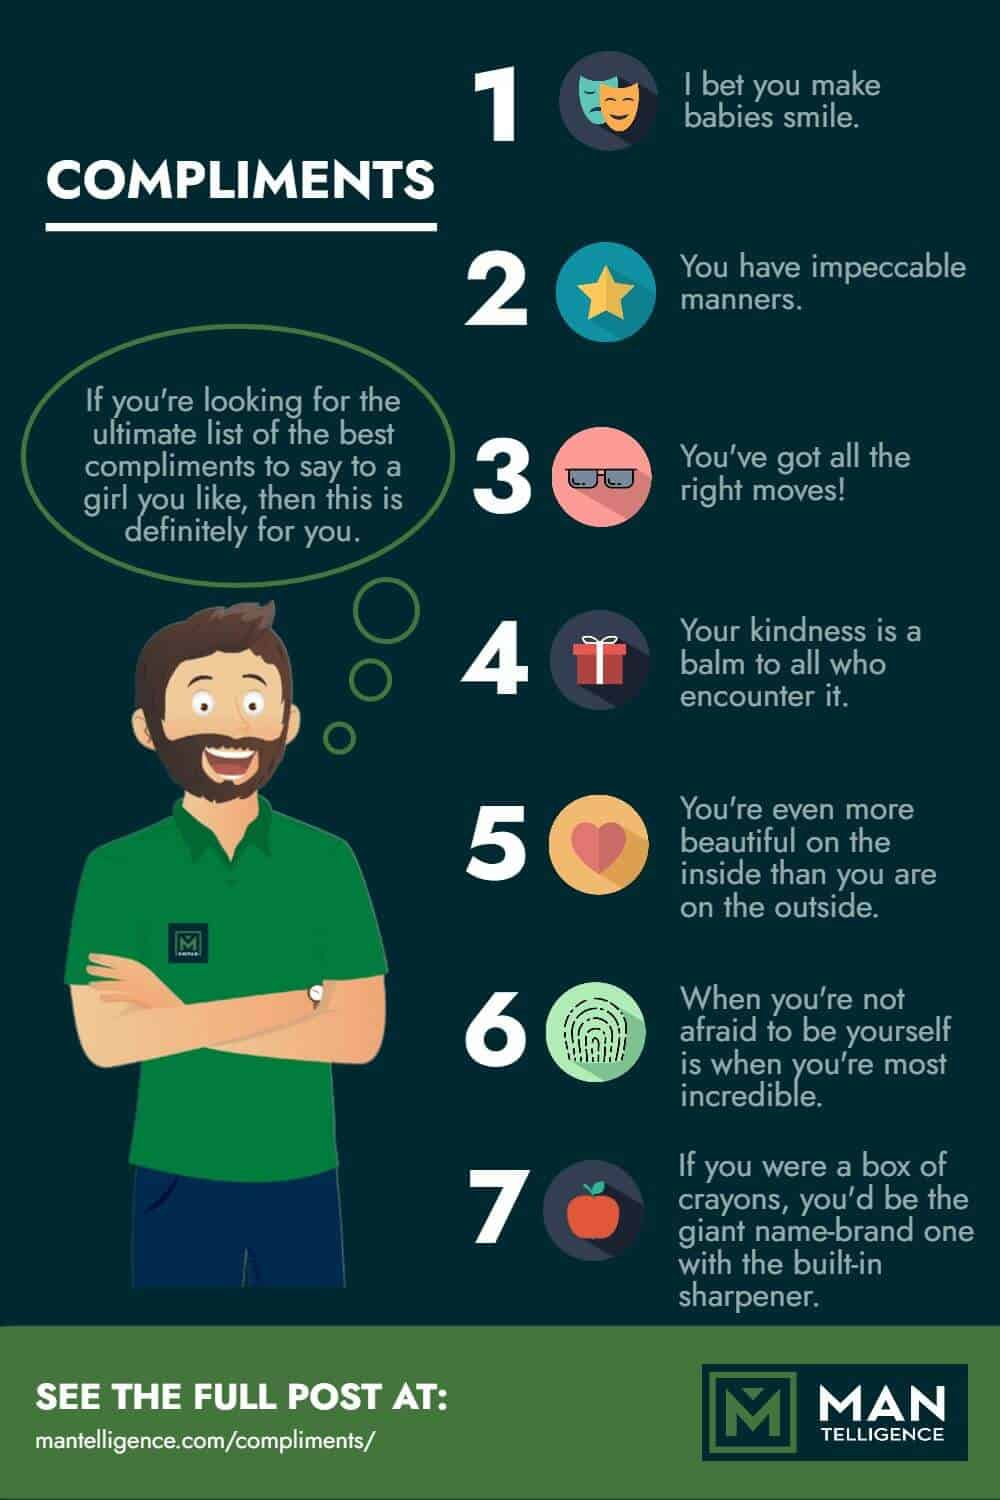 infographic about compliments